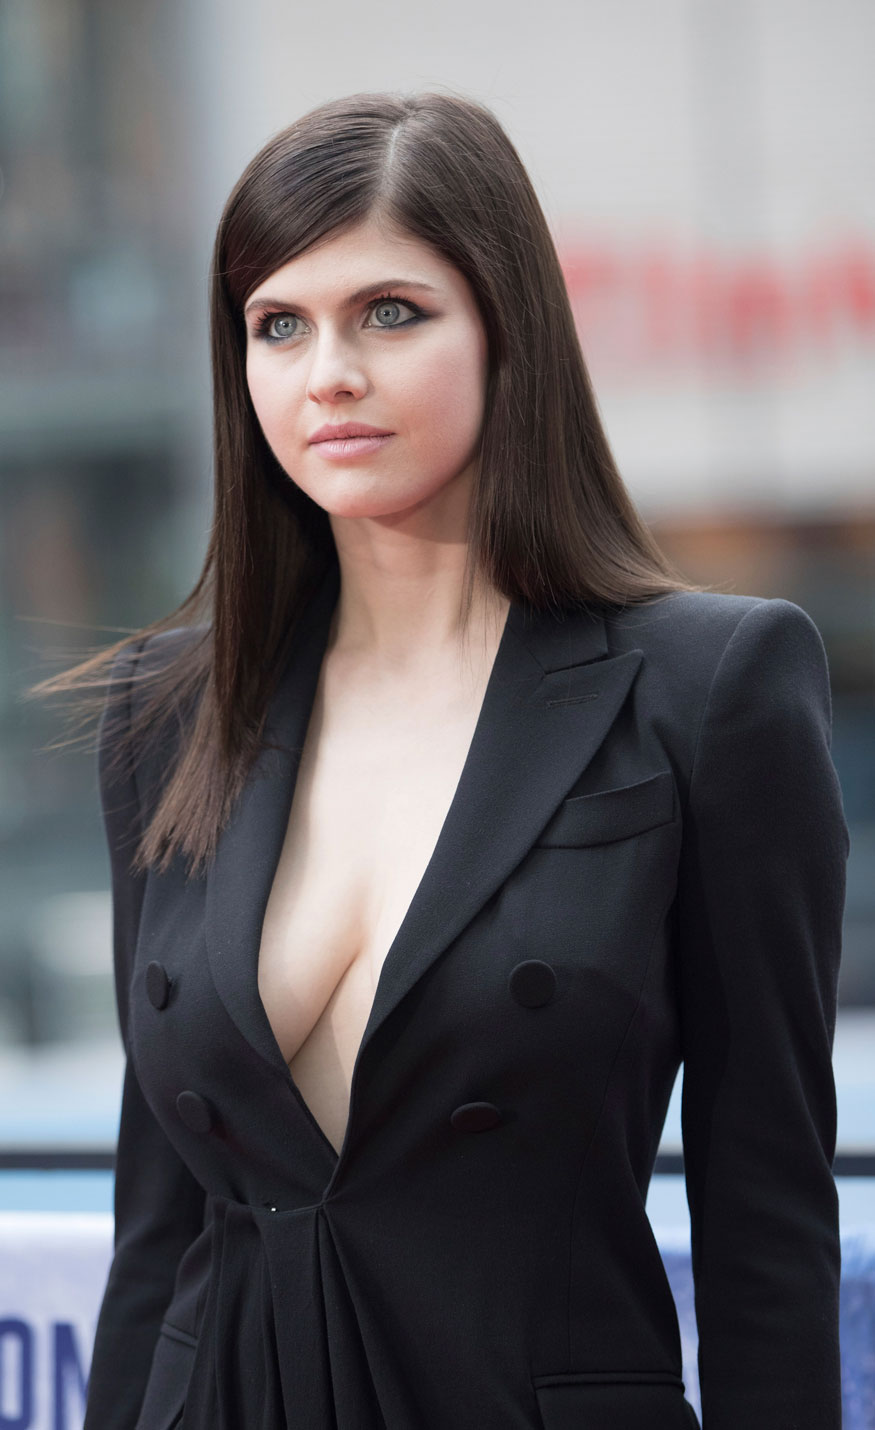 Alexandra Daddario During a Photocall For The Film 'Baywatch' in Berlin